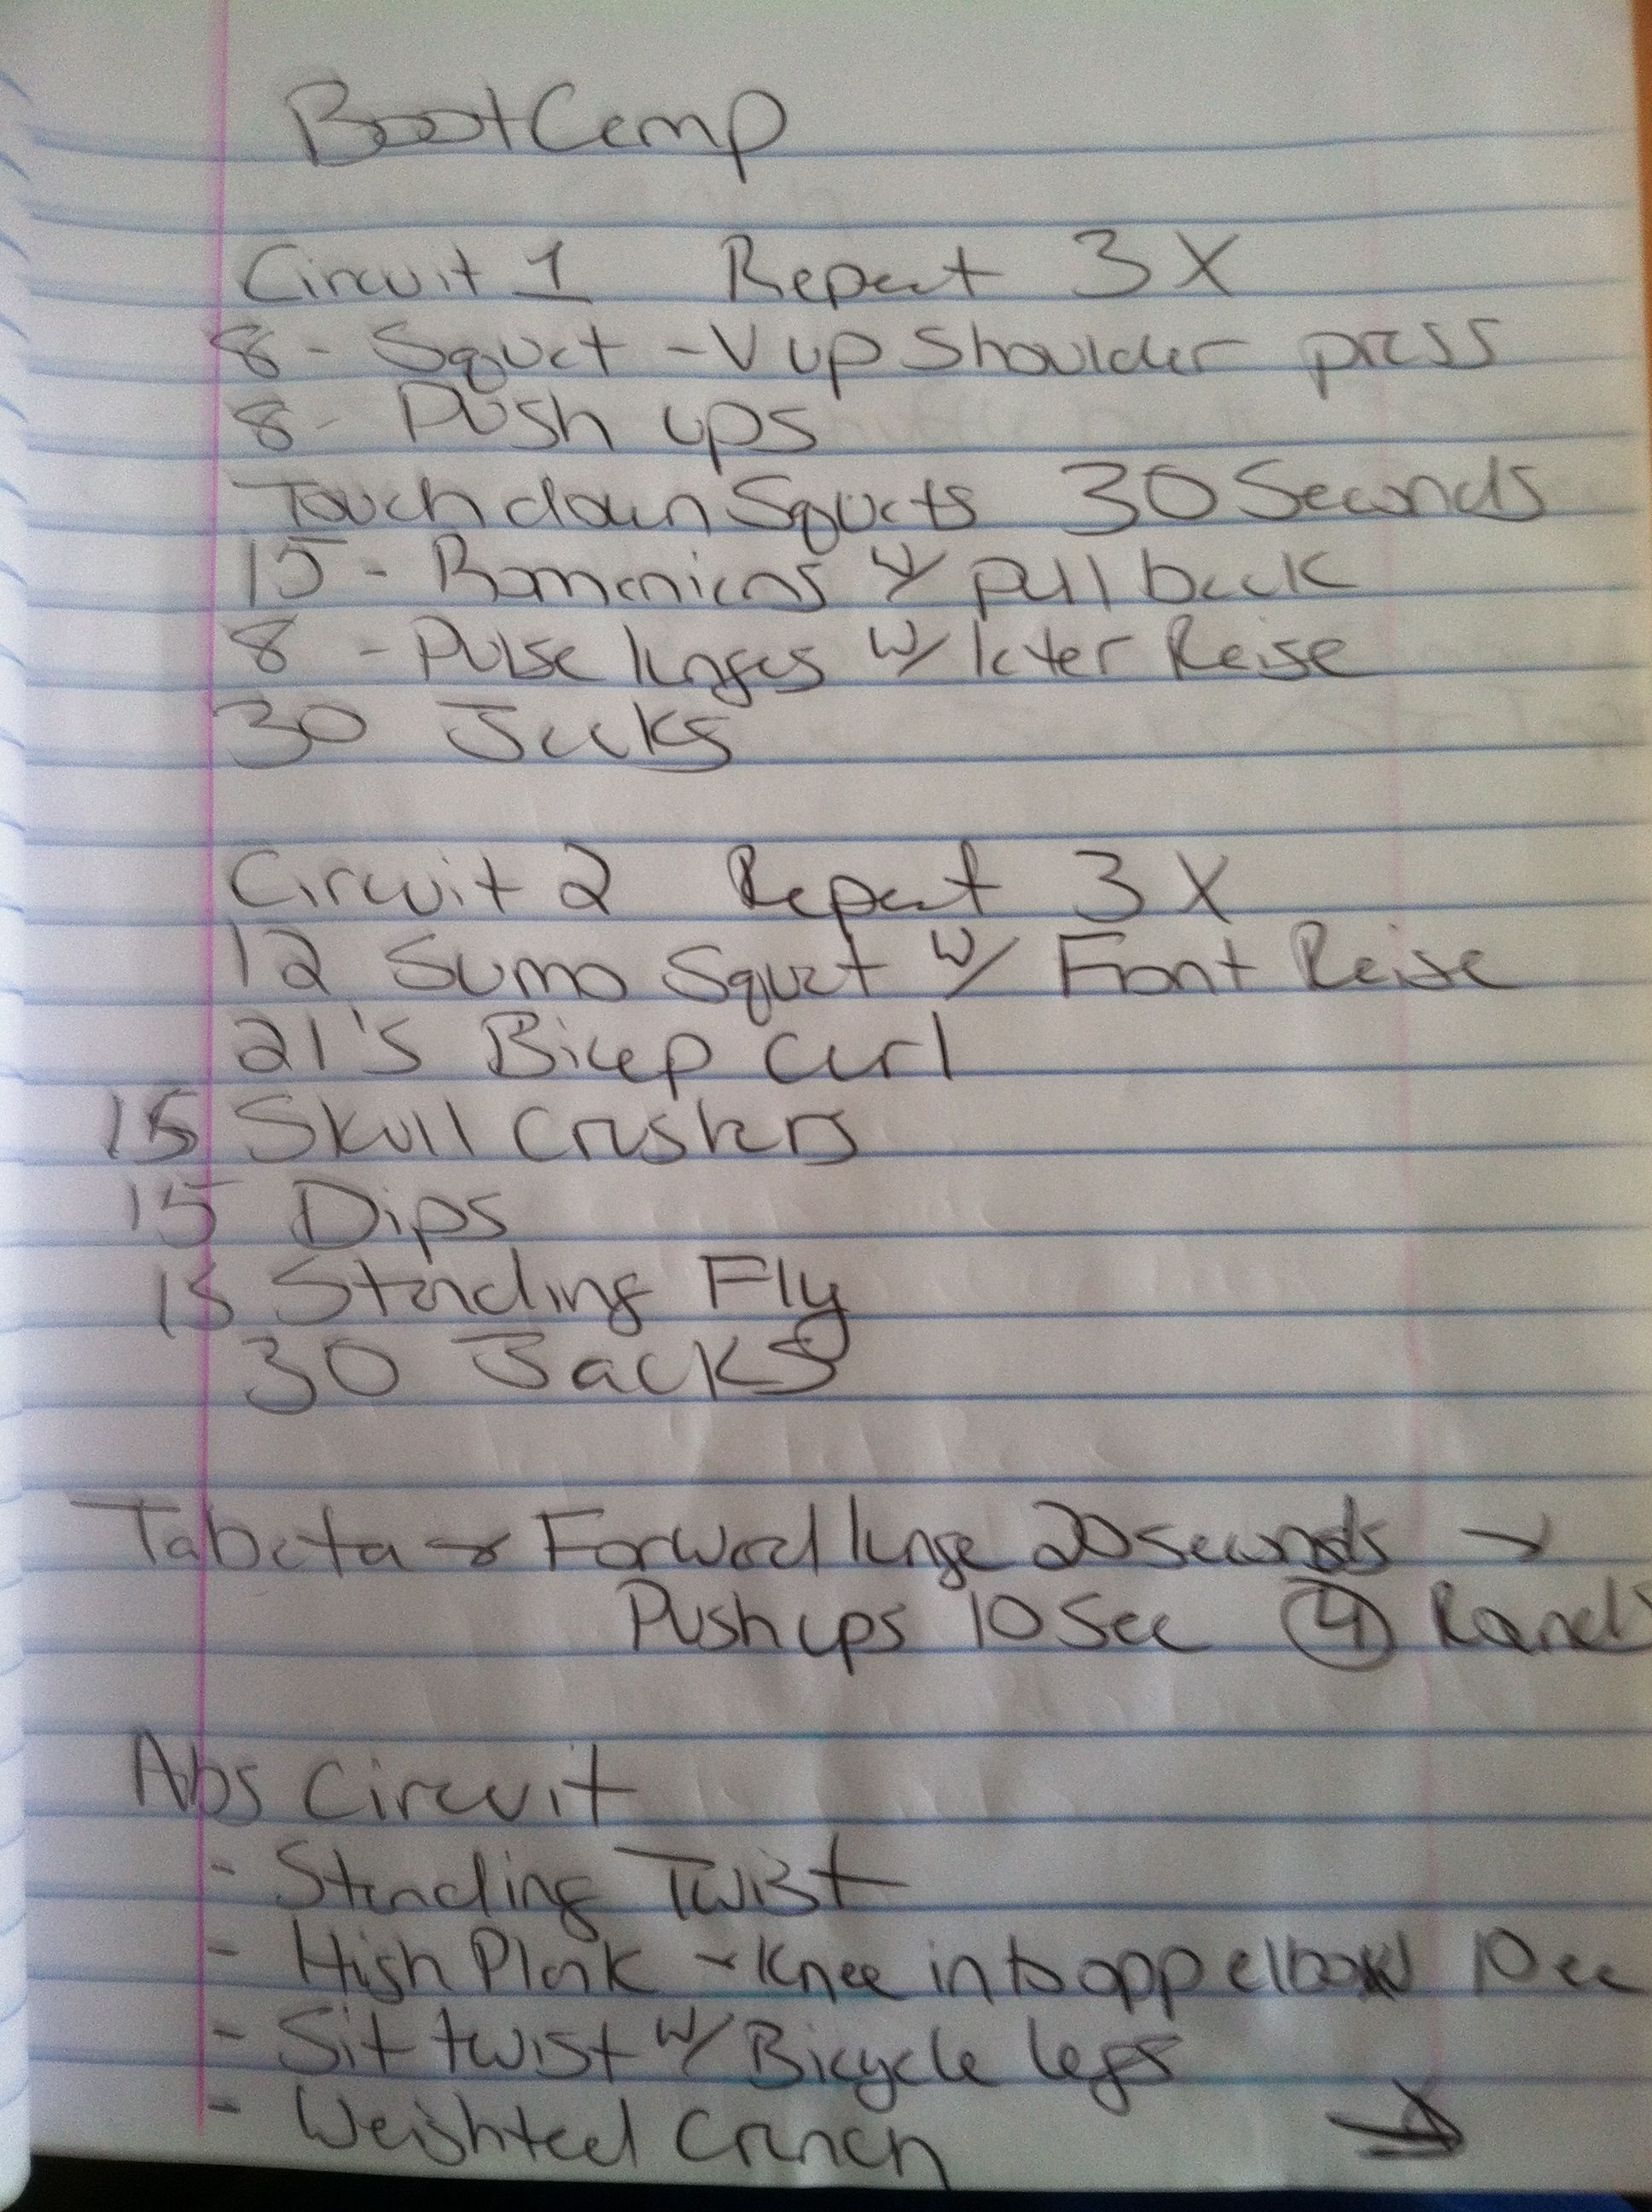 Workouts DONE ( I apologize for my handwriting)